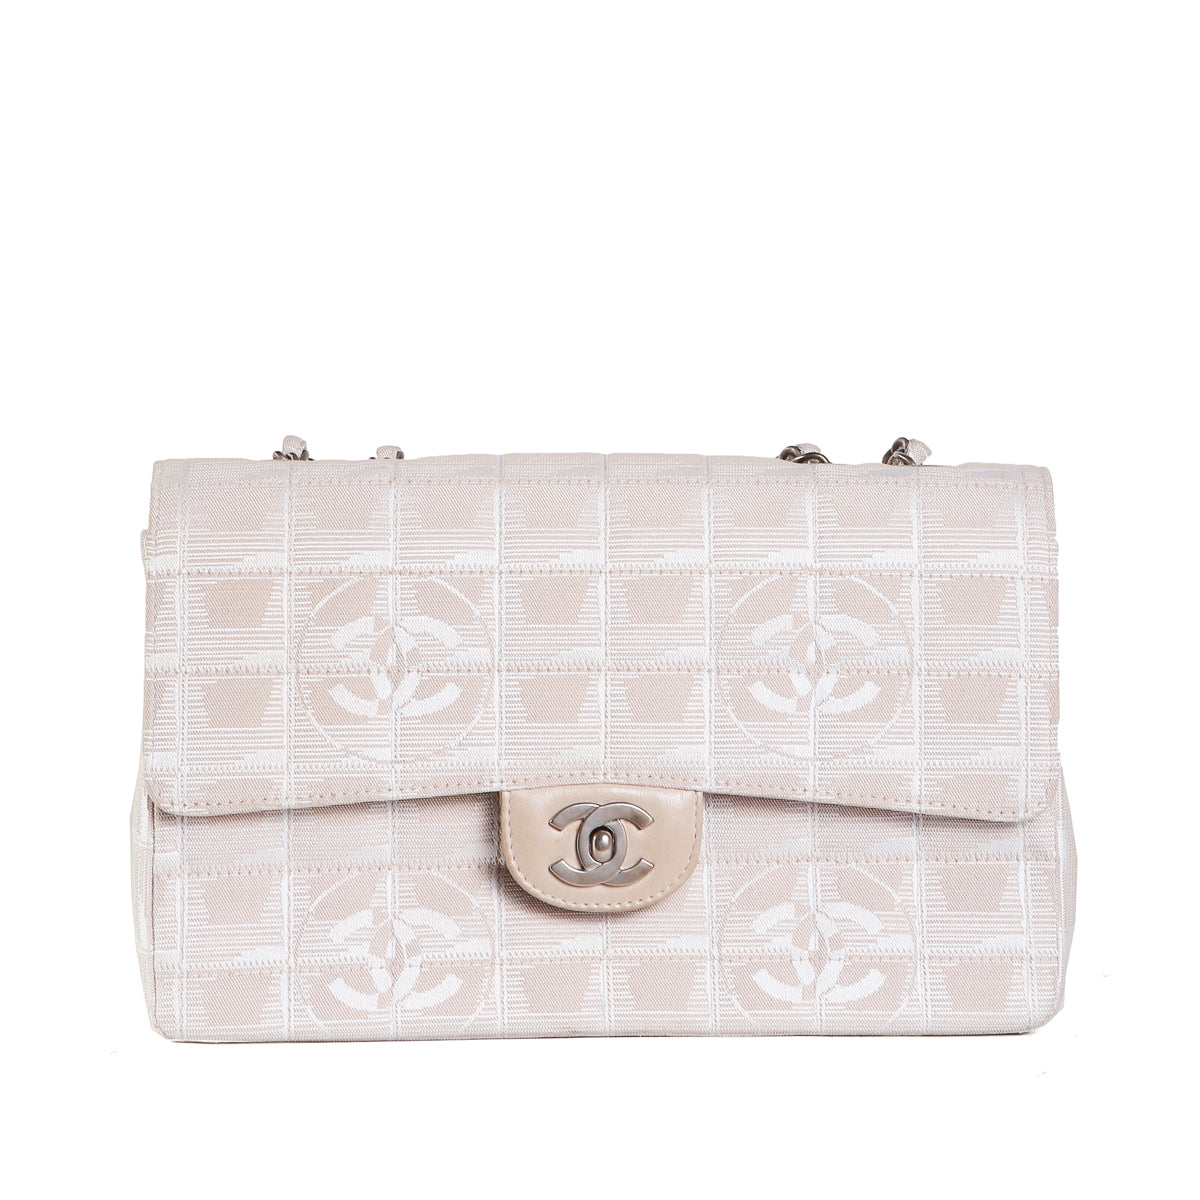 Quilted Nylon Shoulder Bag with Subtle Graphic Logo Print